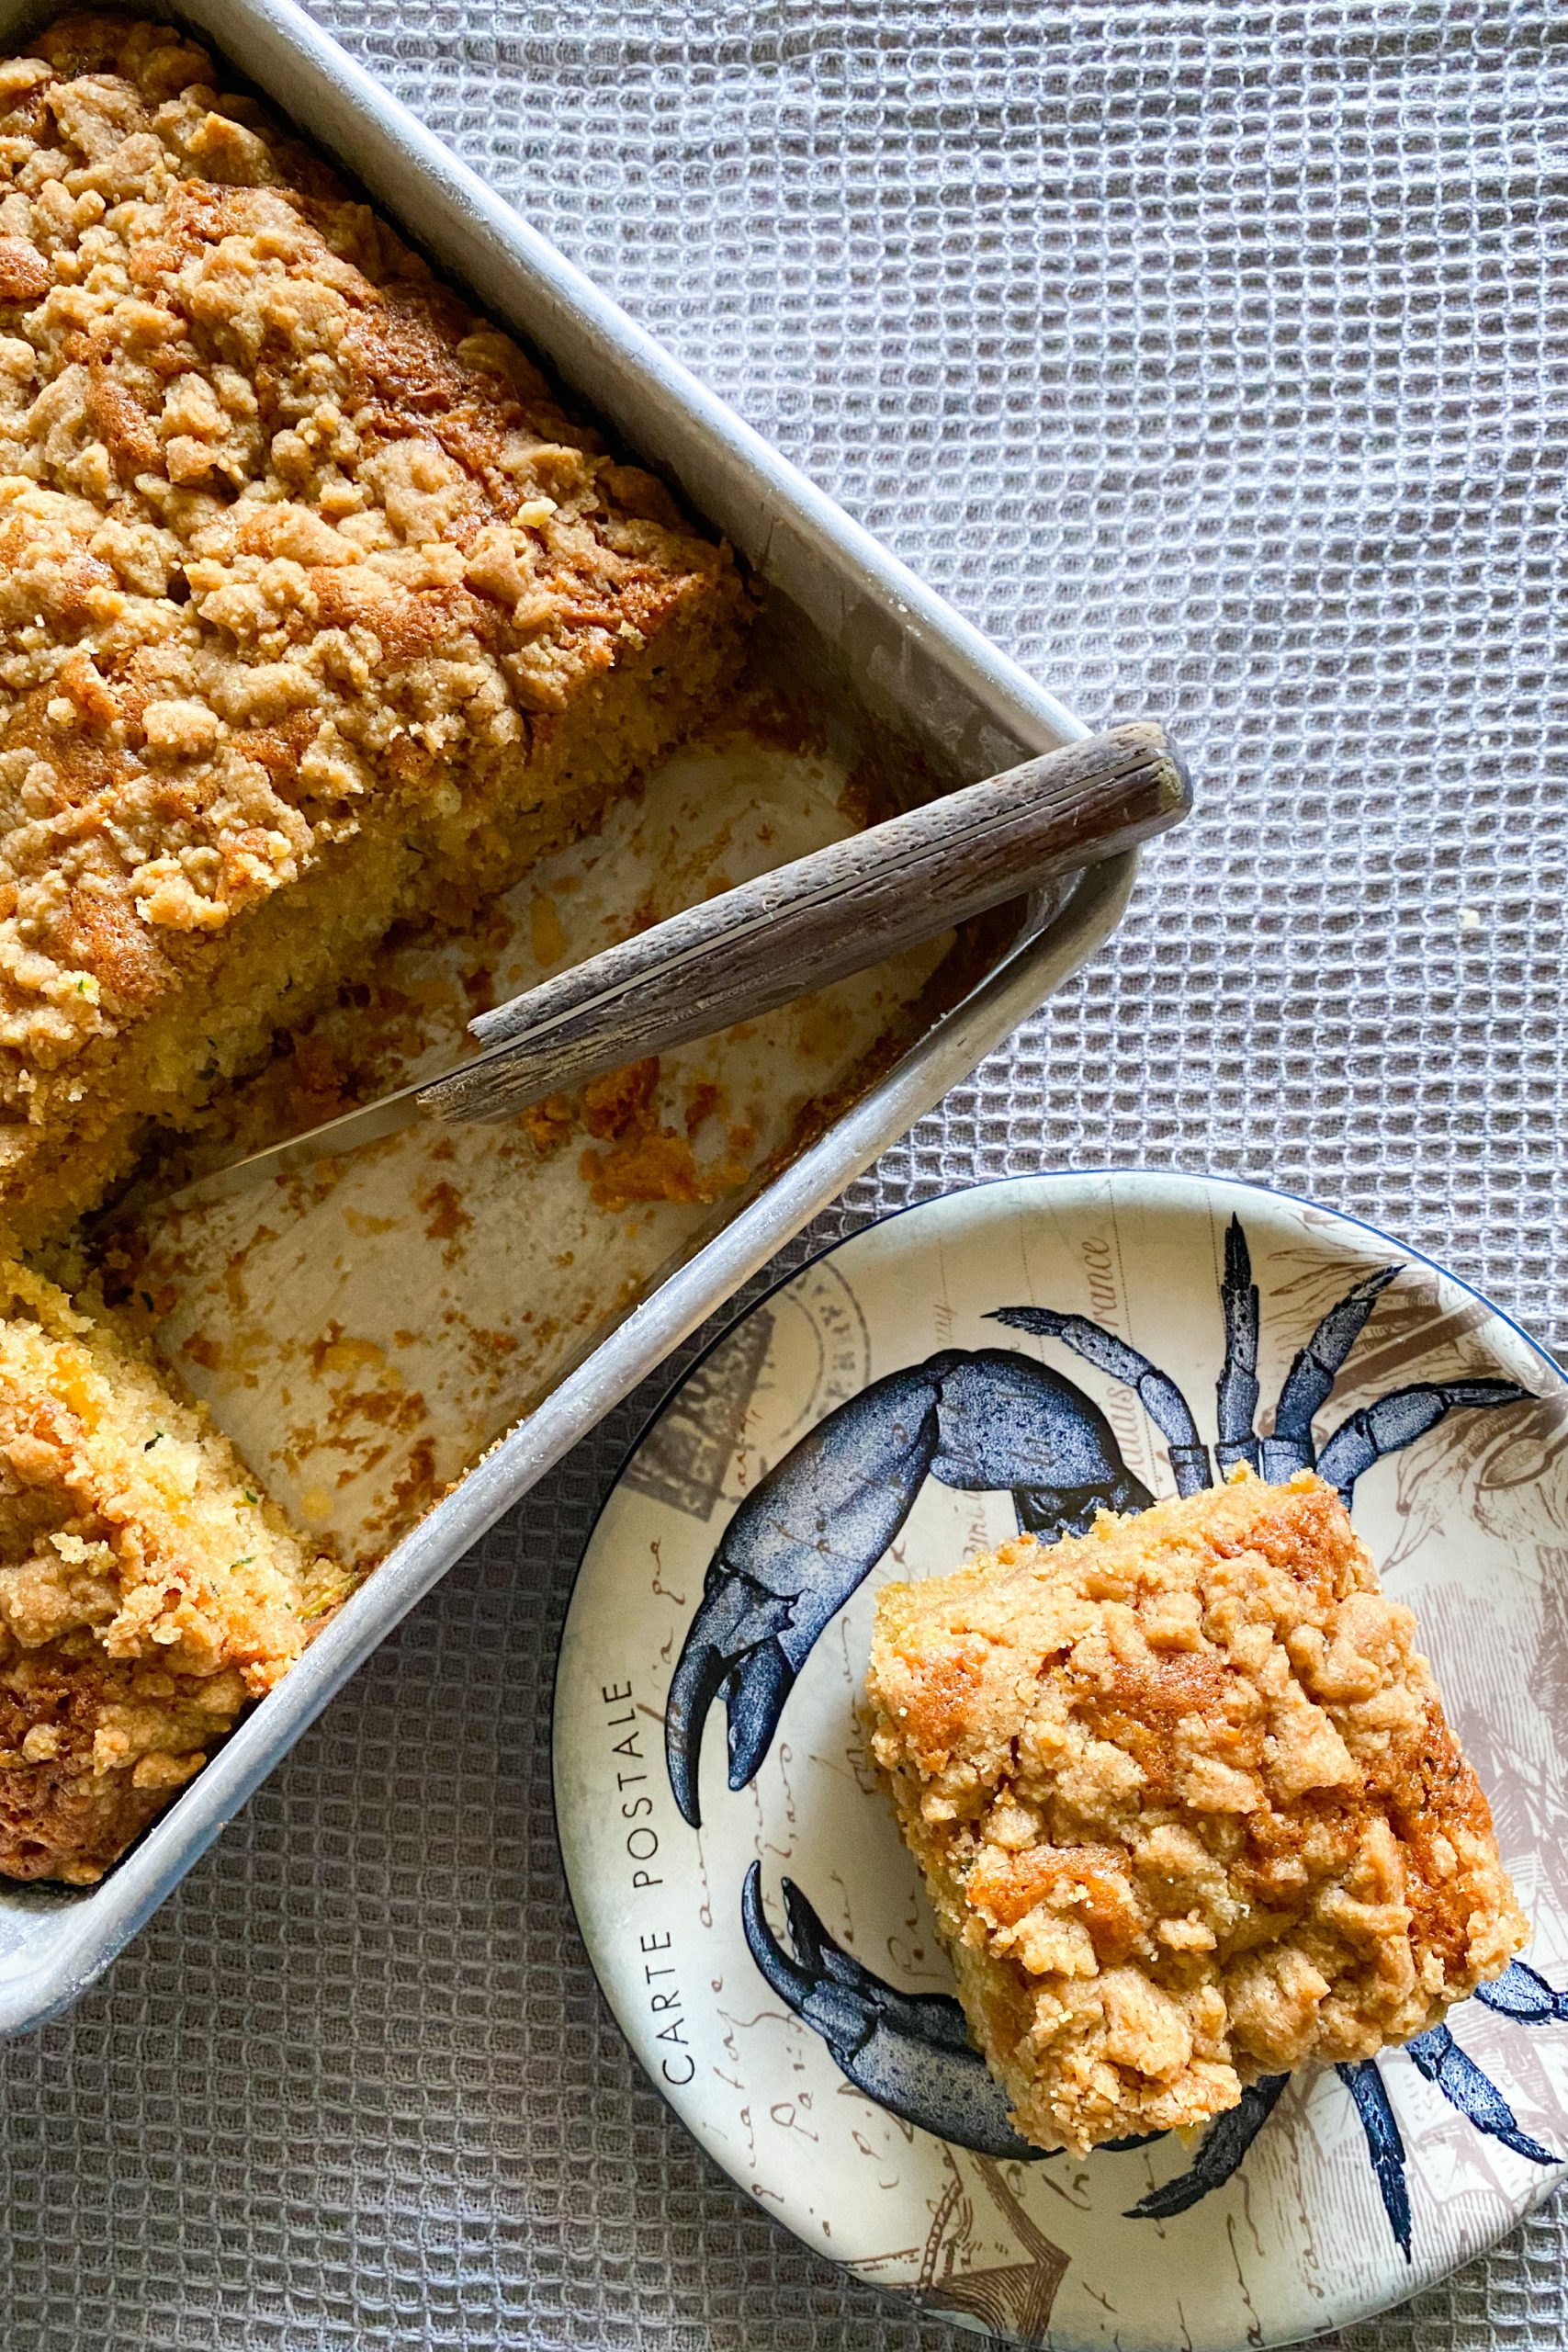 Easy Zucchini Cake With Crumble Topping – No Mixer Needed!